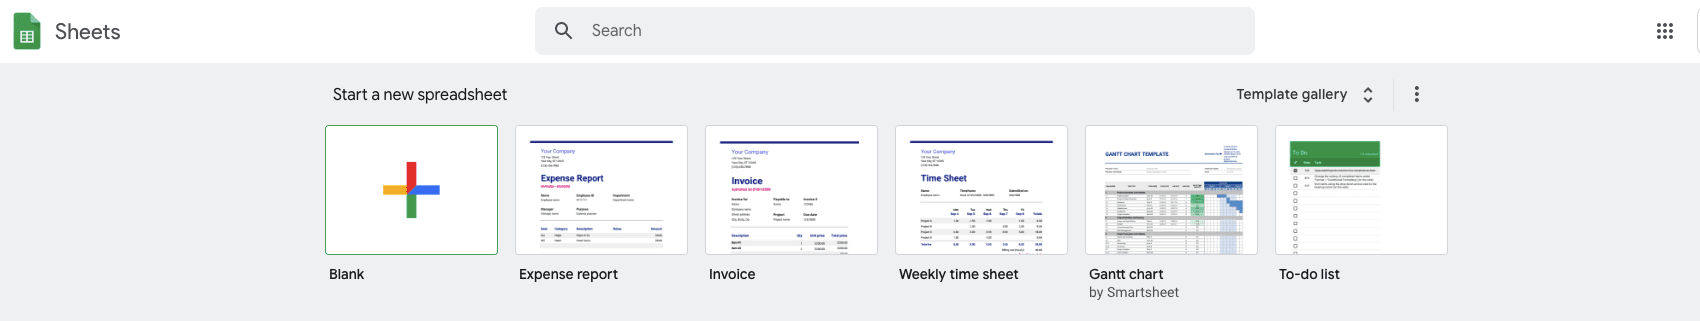 Sales Plan Template: Google Sheets Template Gallery